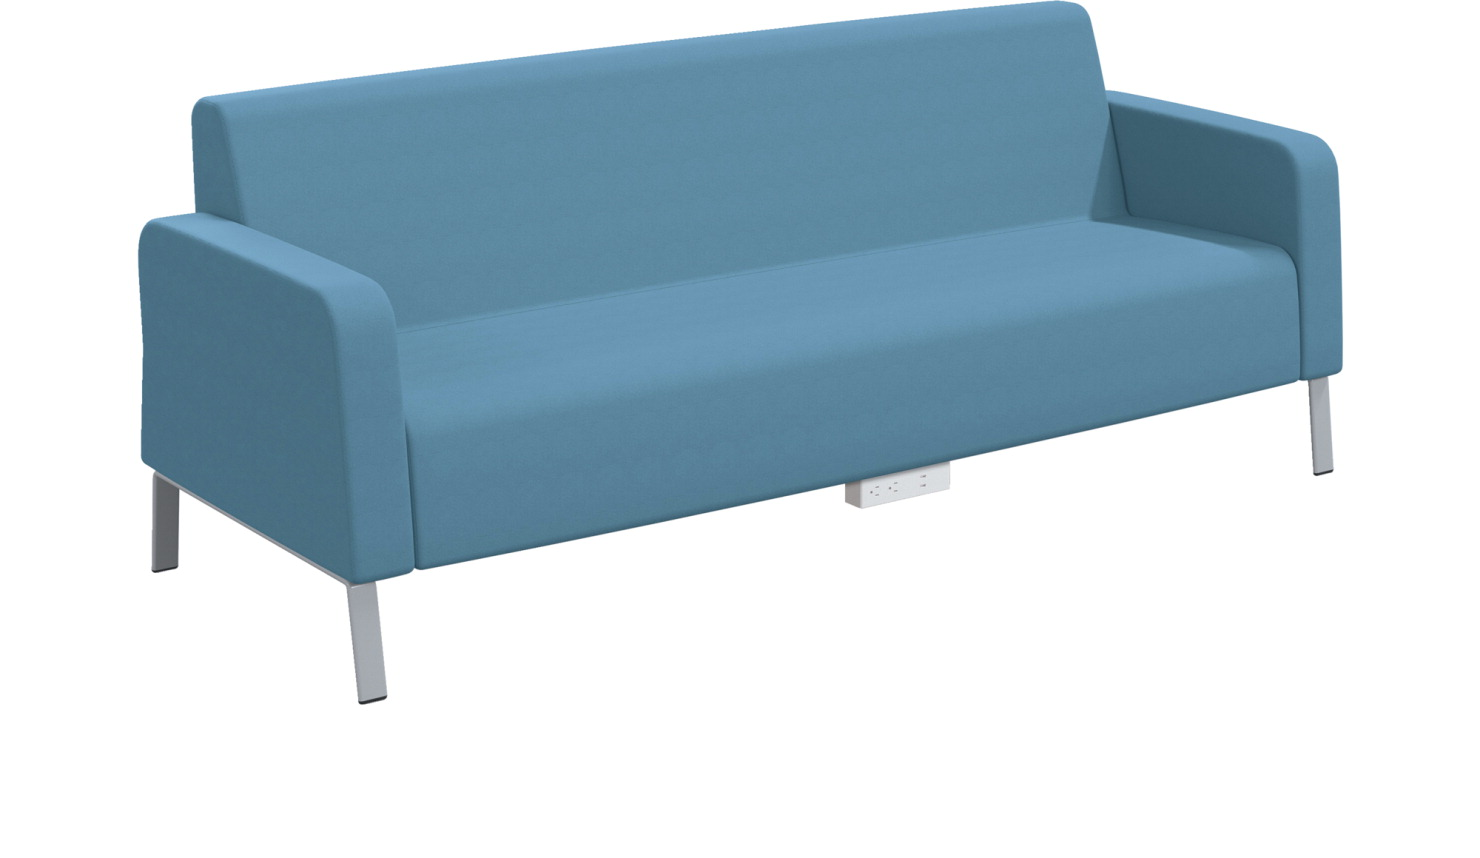 Classroom Select Soft Seating Armed Sofa, Power Under Front, 86 x 32 x 34 Inches, Various Options